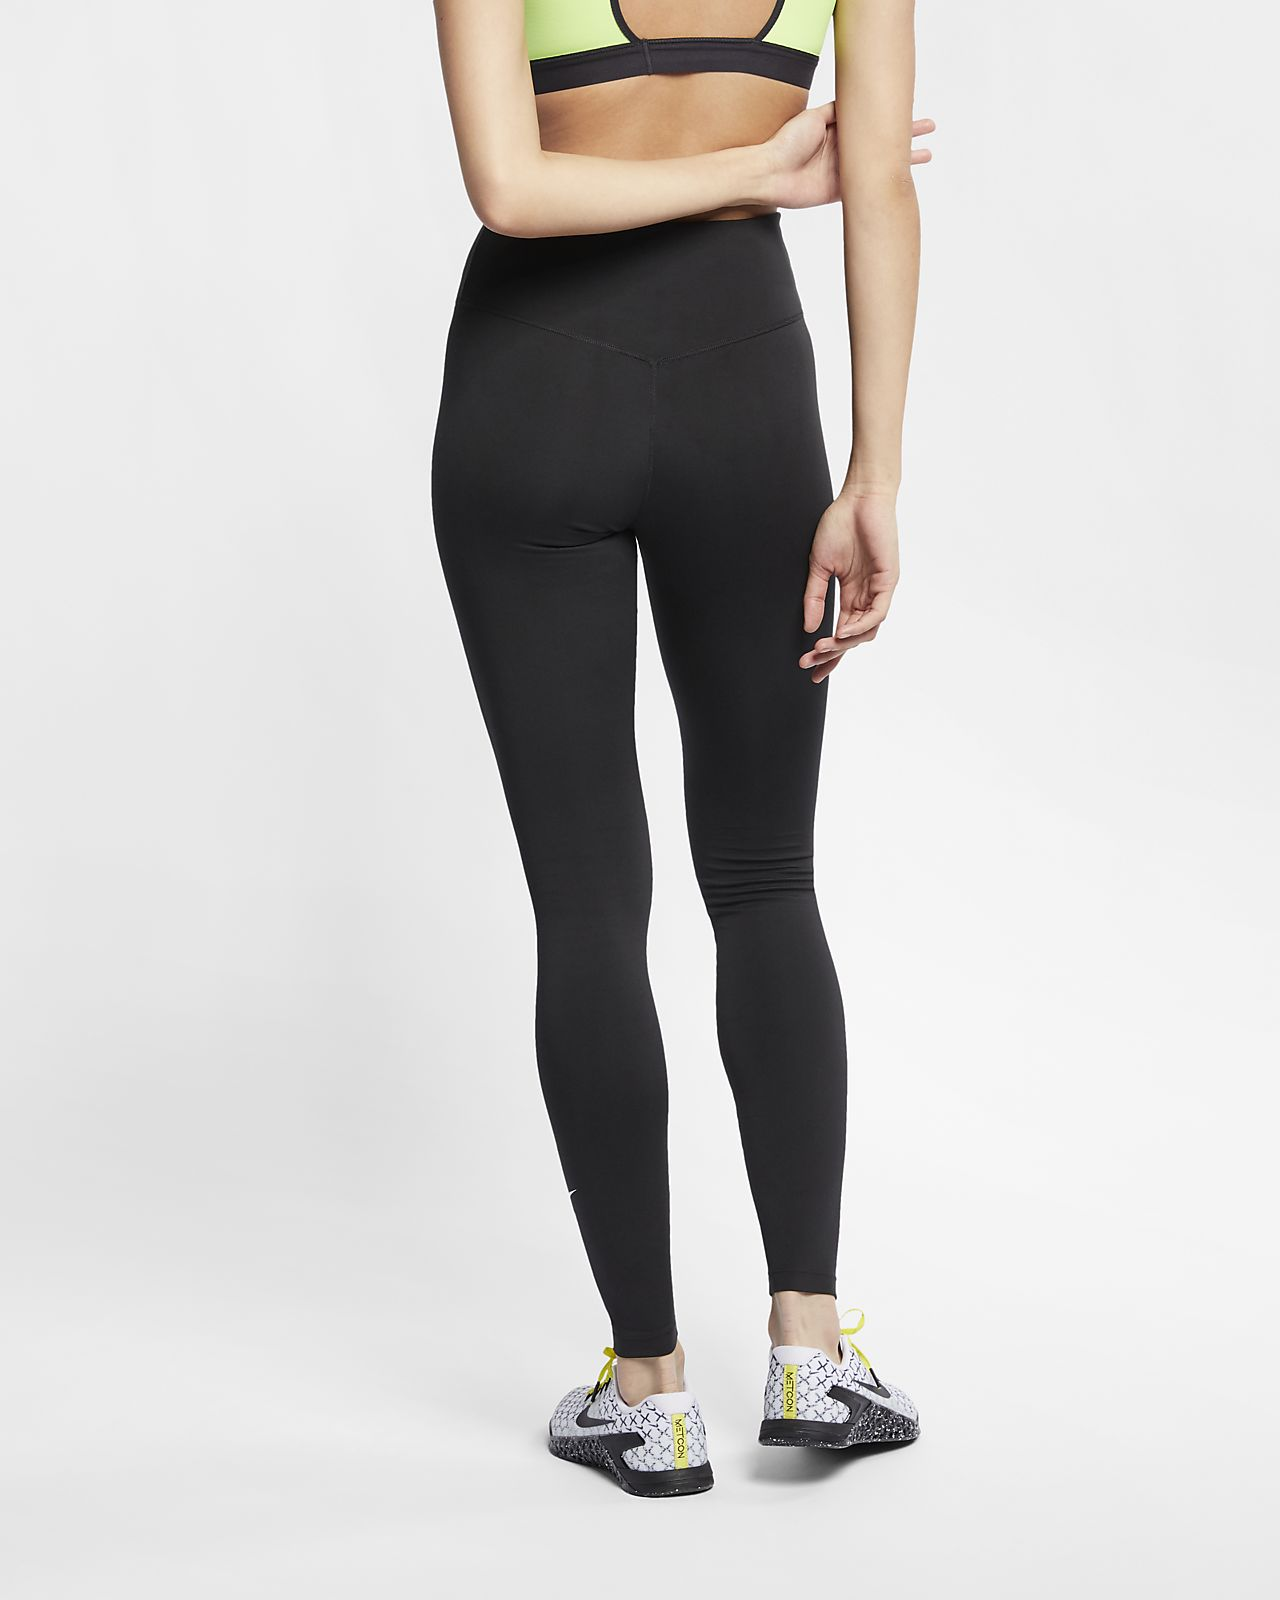 tights – Fit, strong & happy!